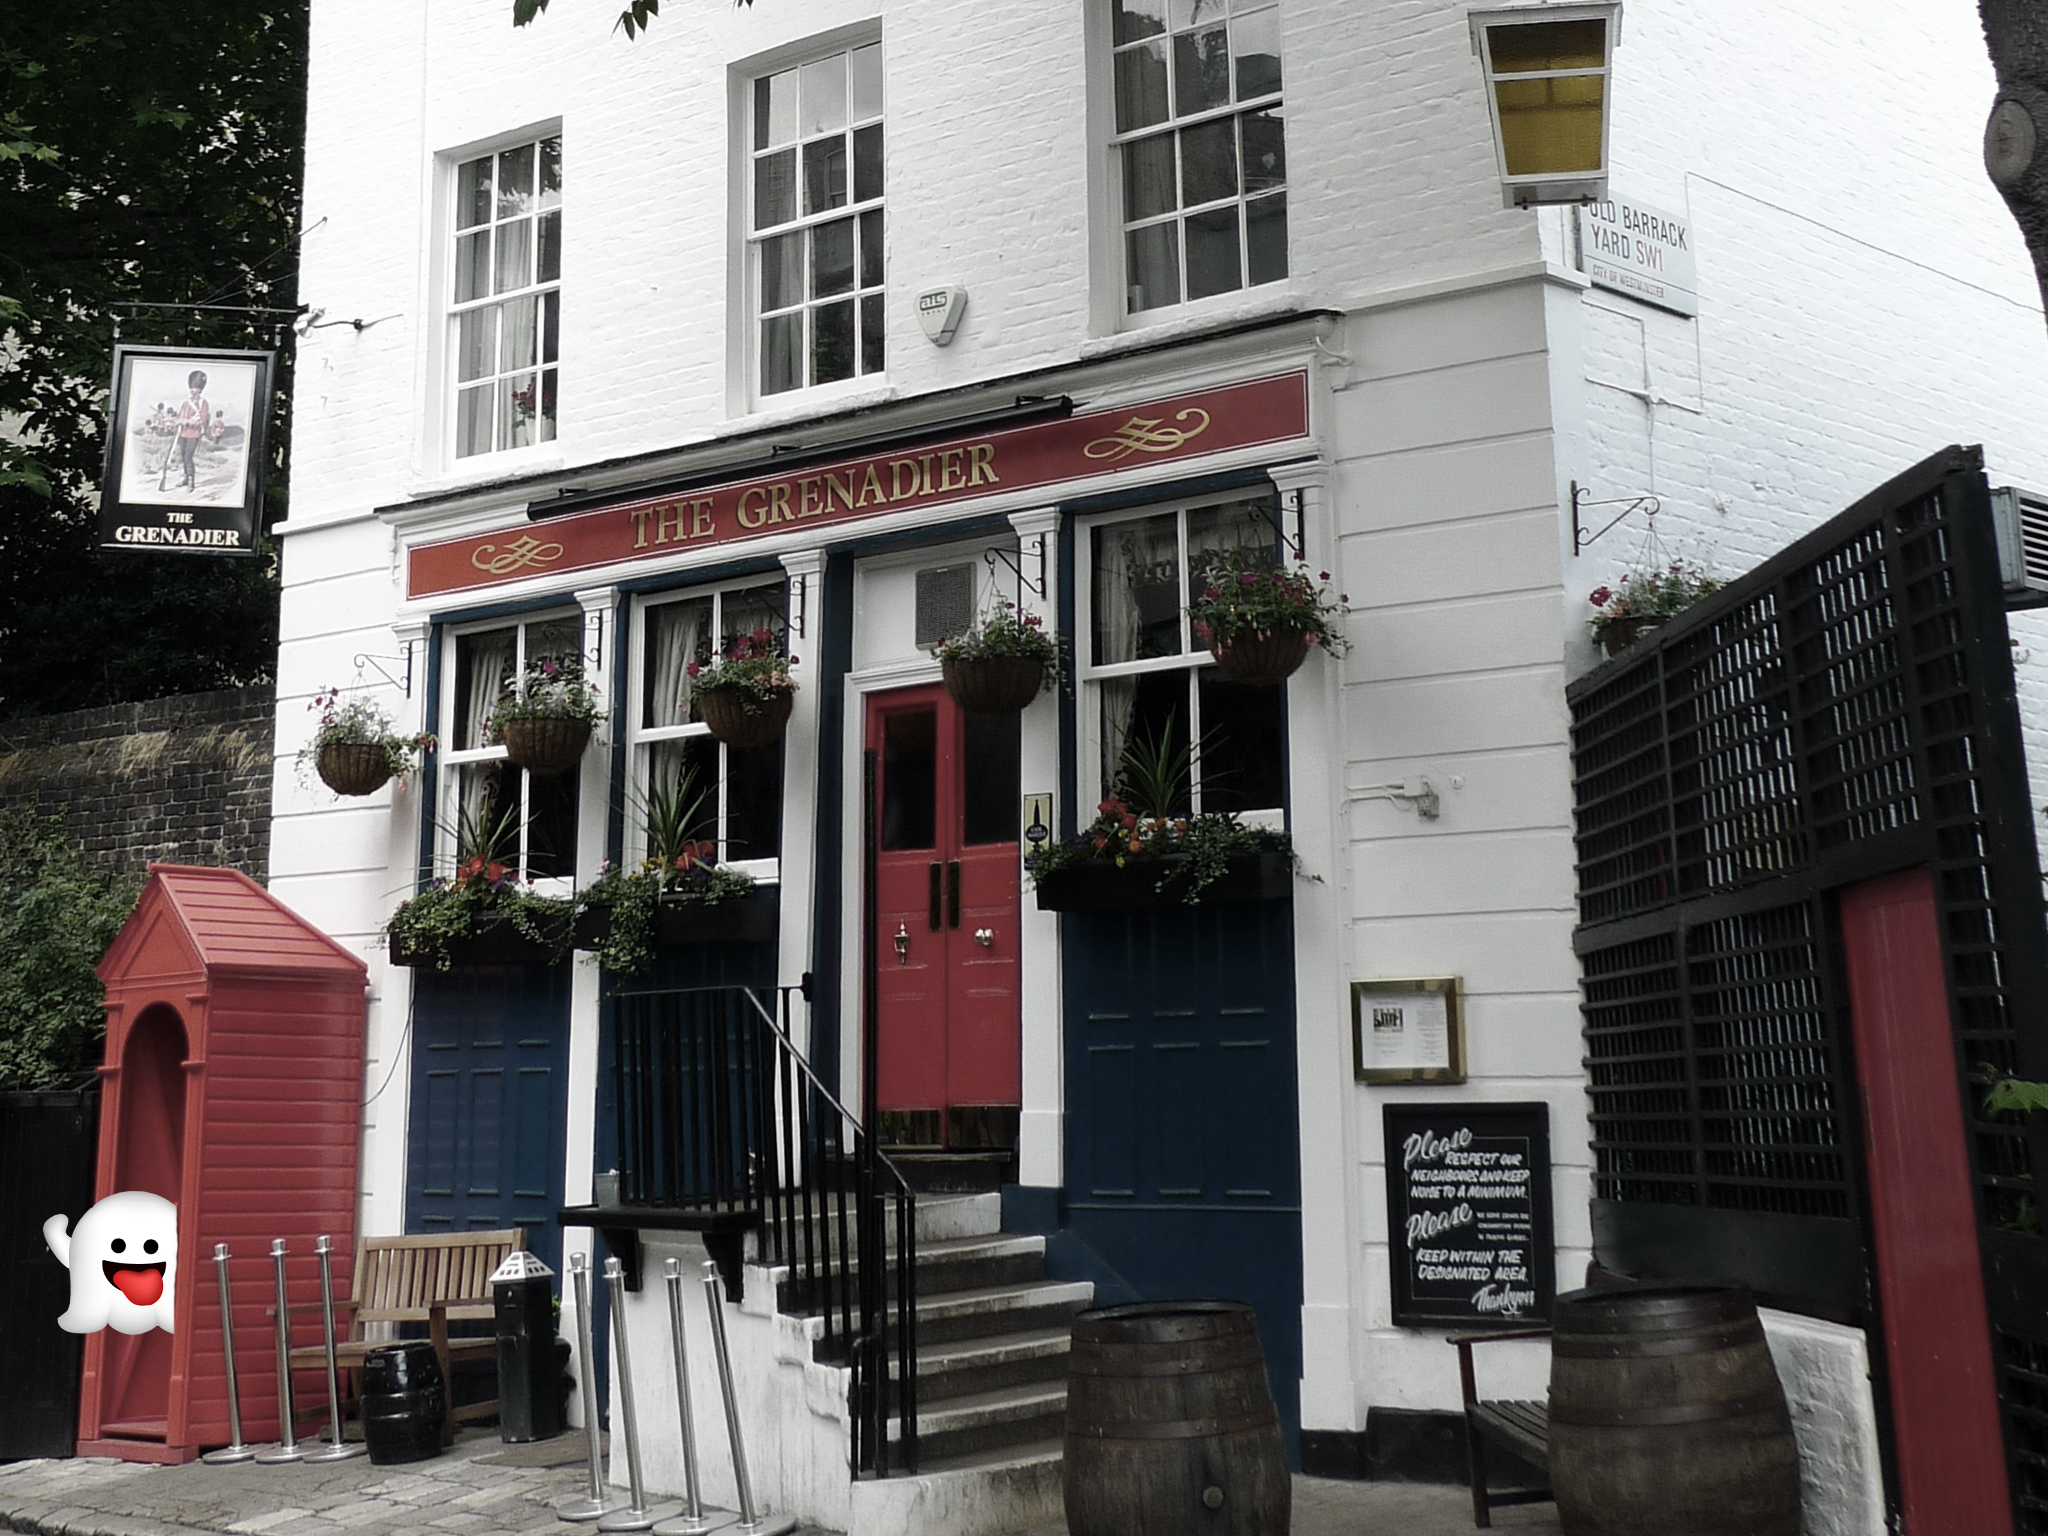 haunted pubs, grenadier